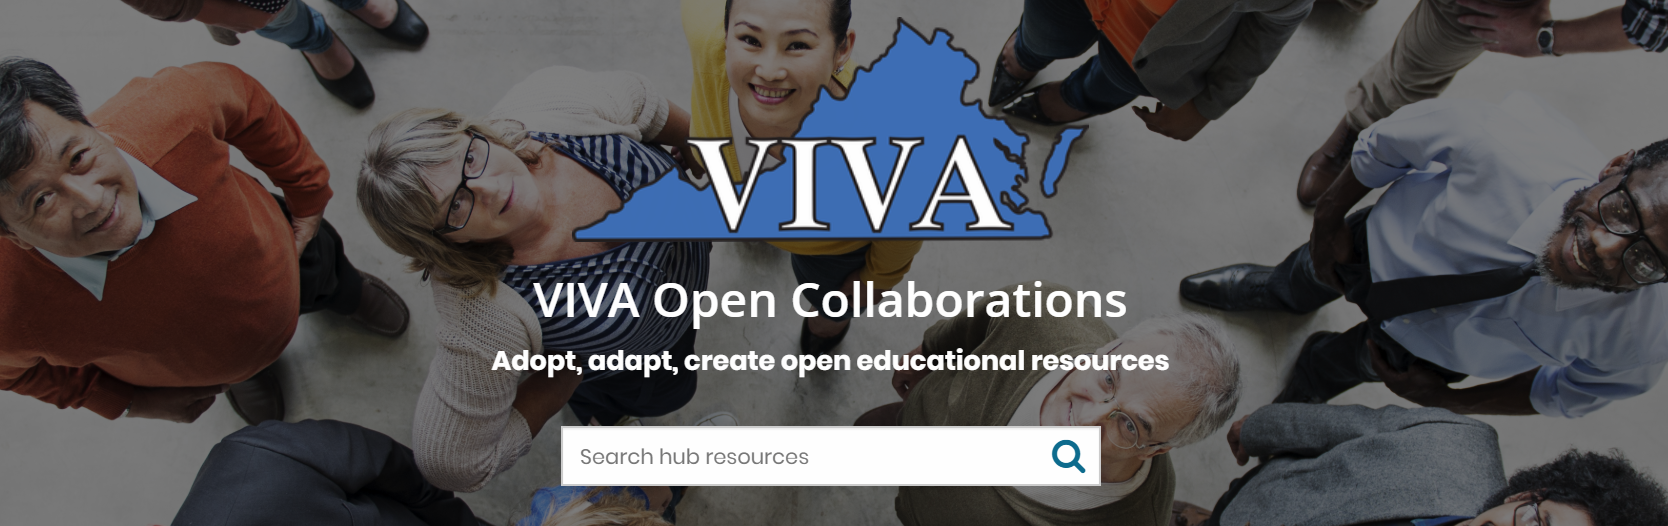 VIVA Open Collaborations